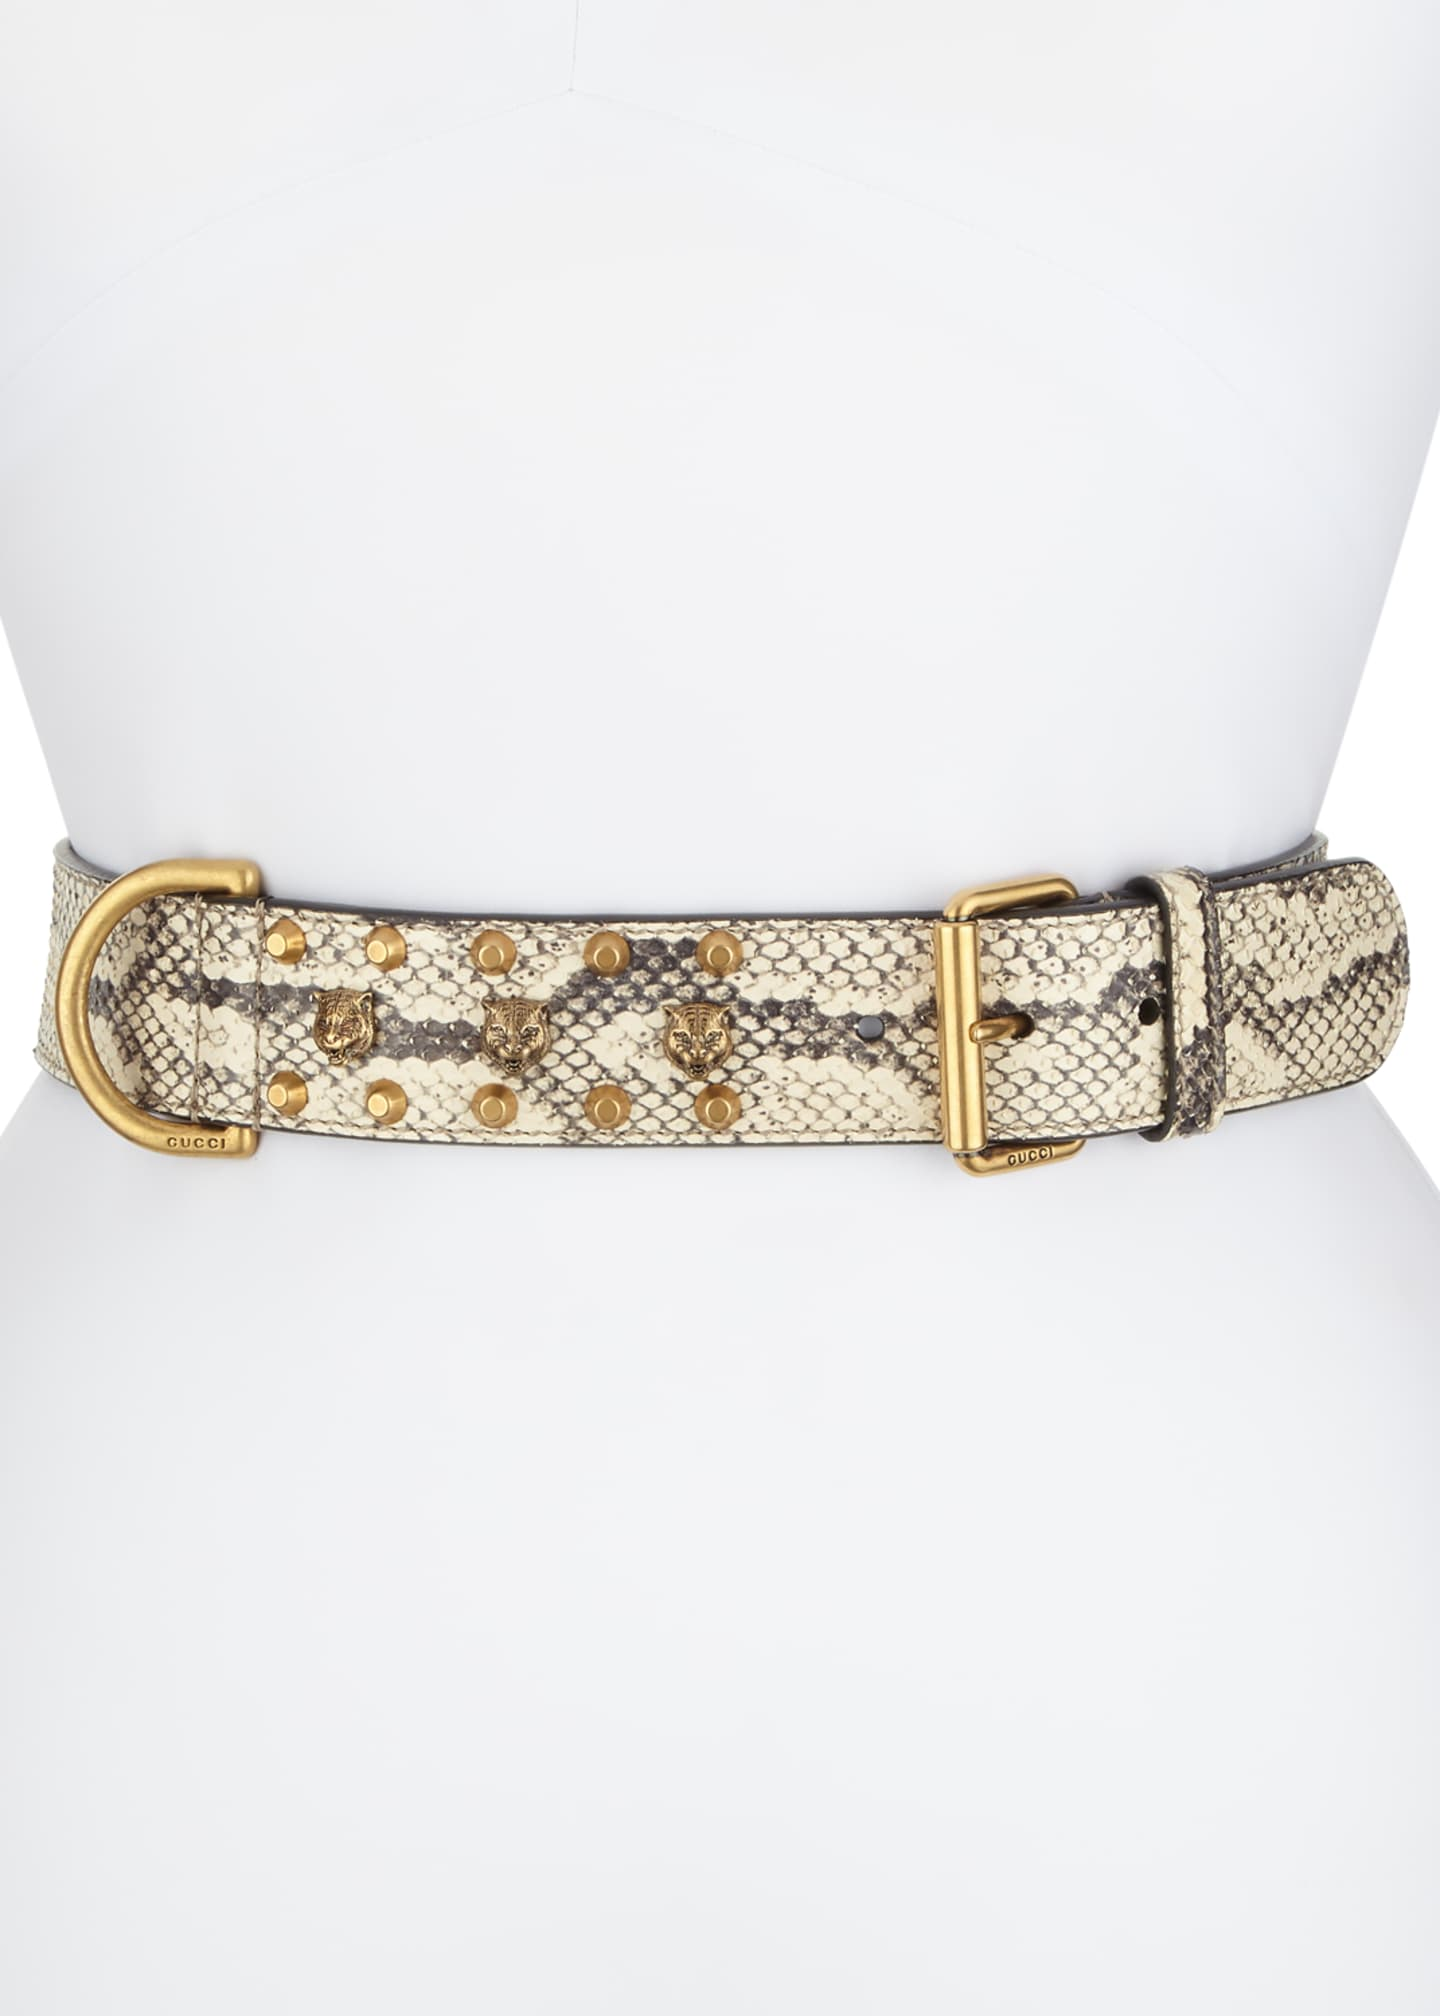 Gucci Python Tiger-Detail Belt